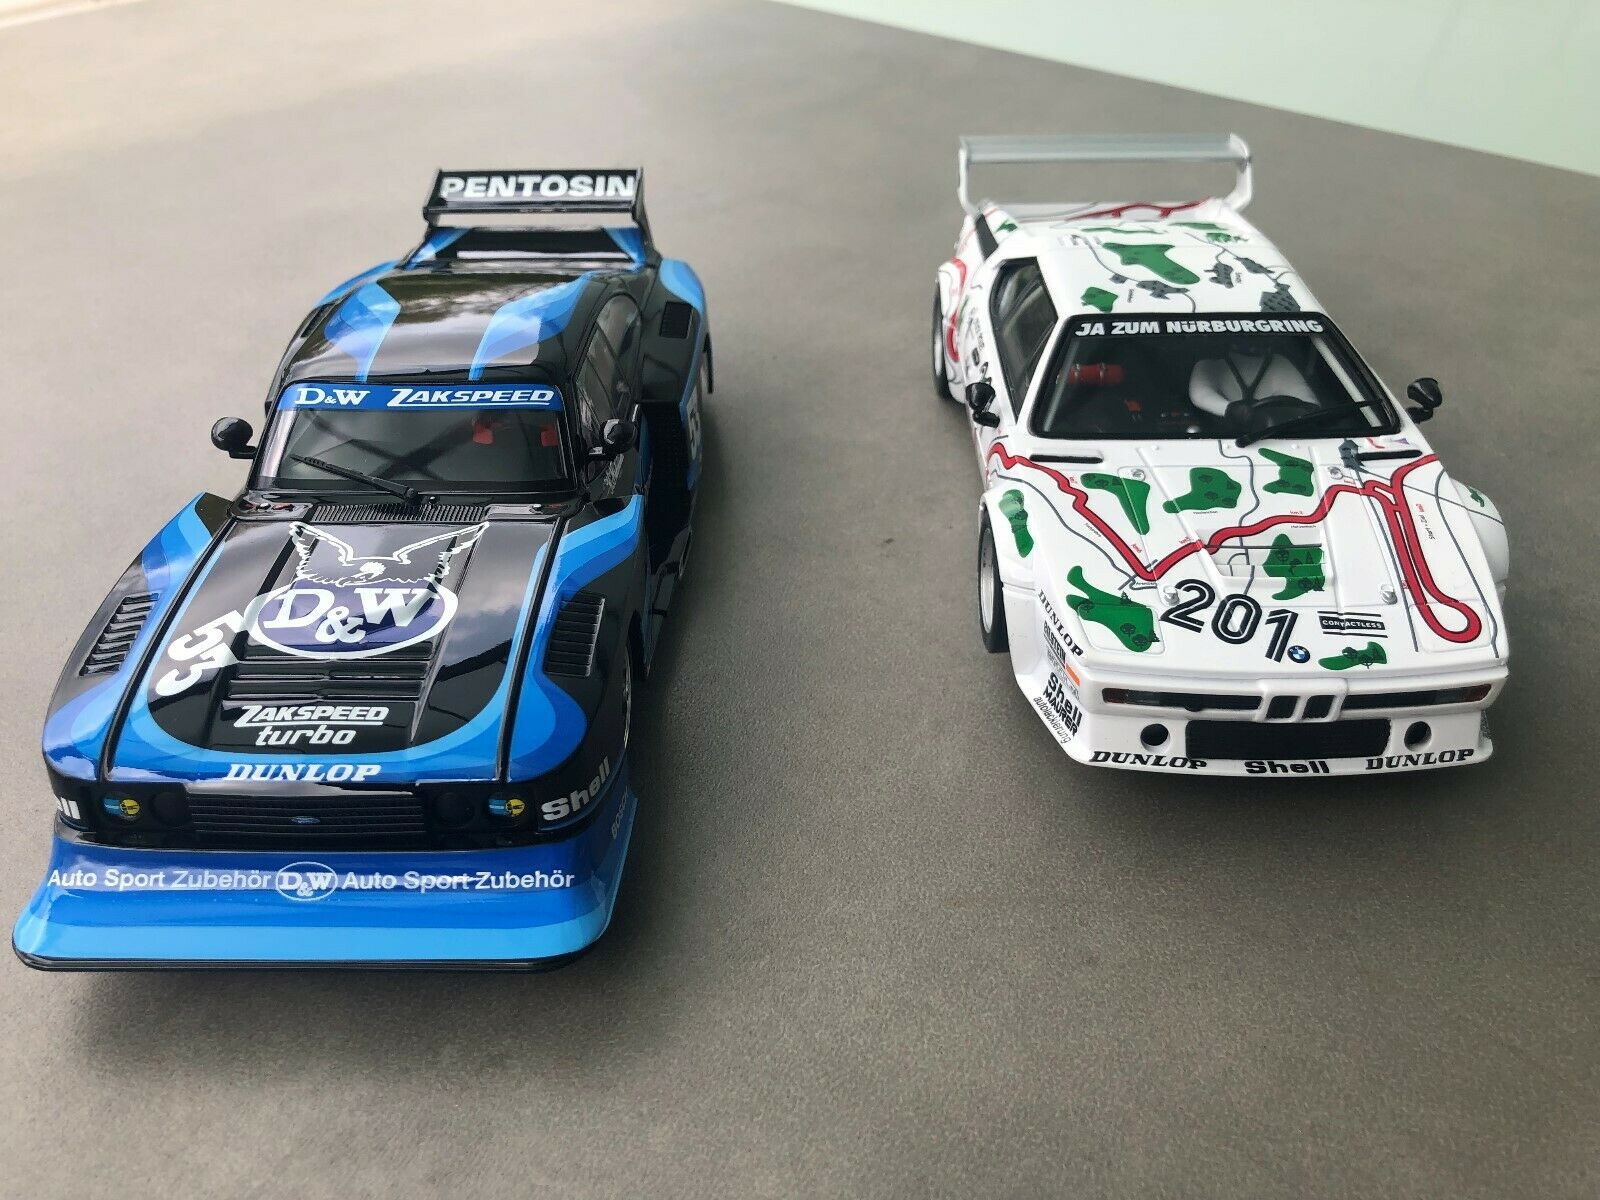 Carrera Digital 124 23859 Ford Capri +23854 BMW M1 Procar Neuf Stp